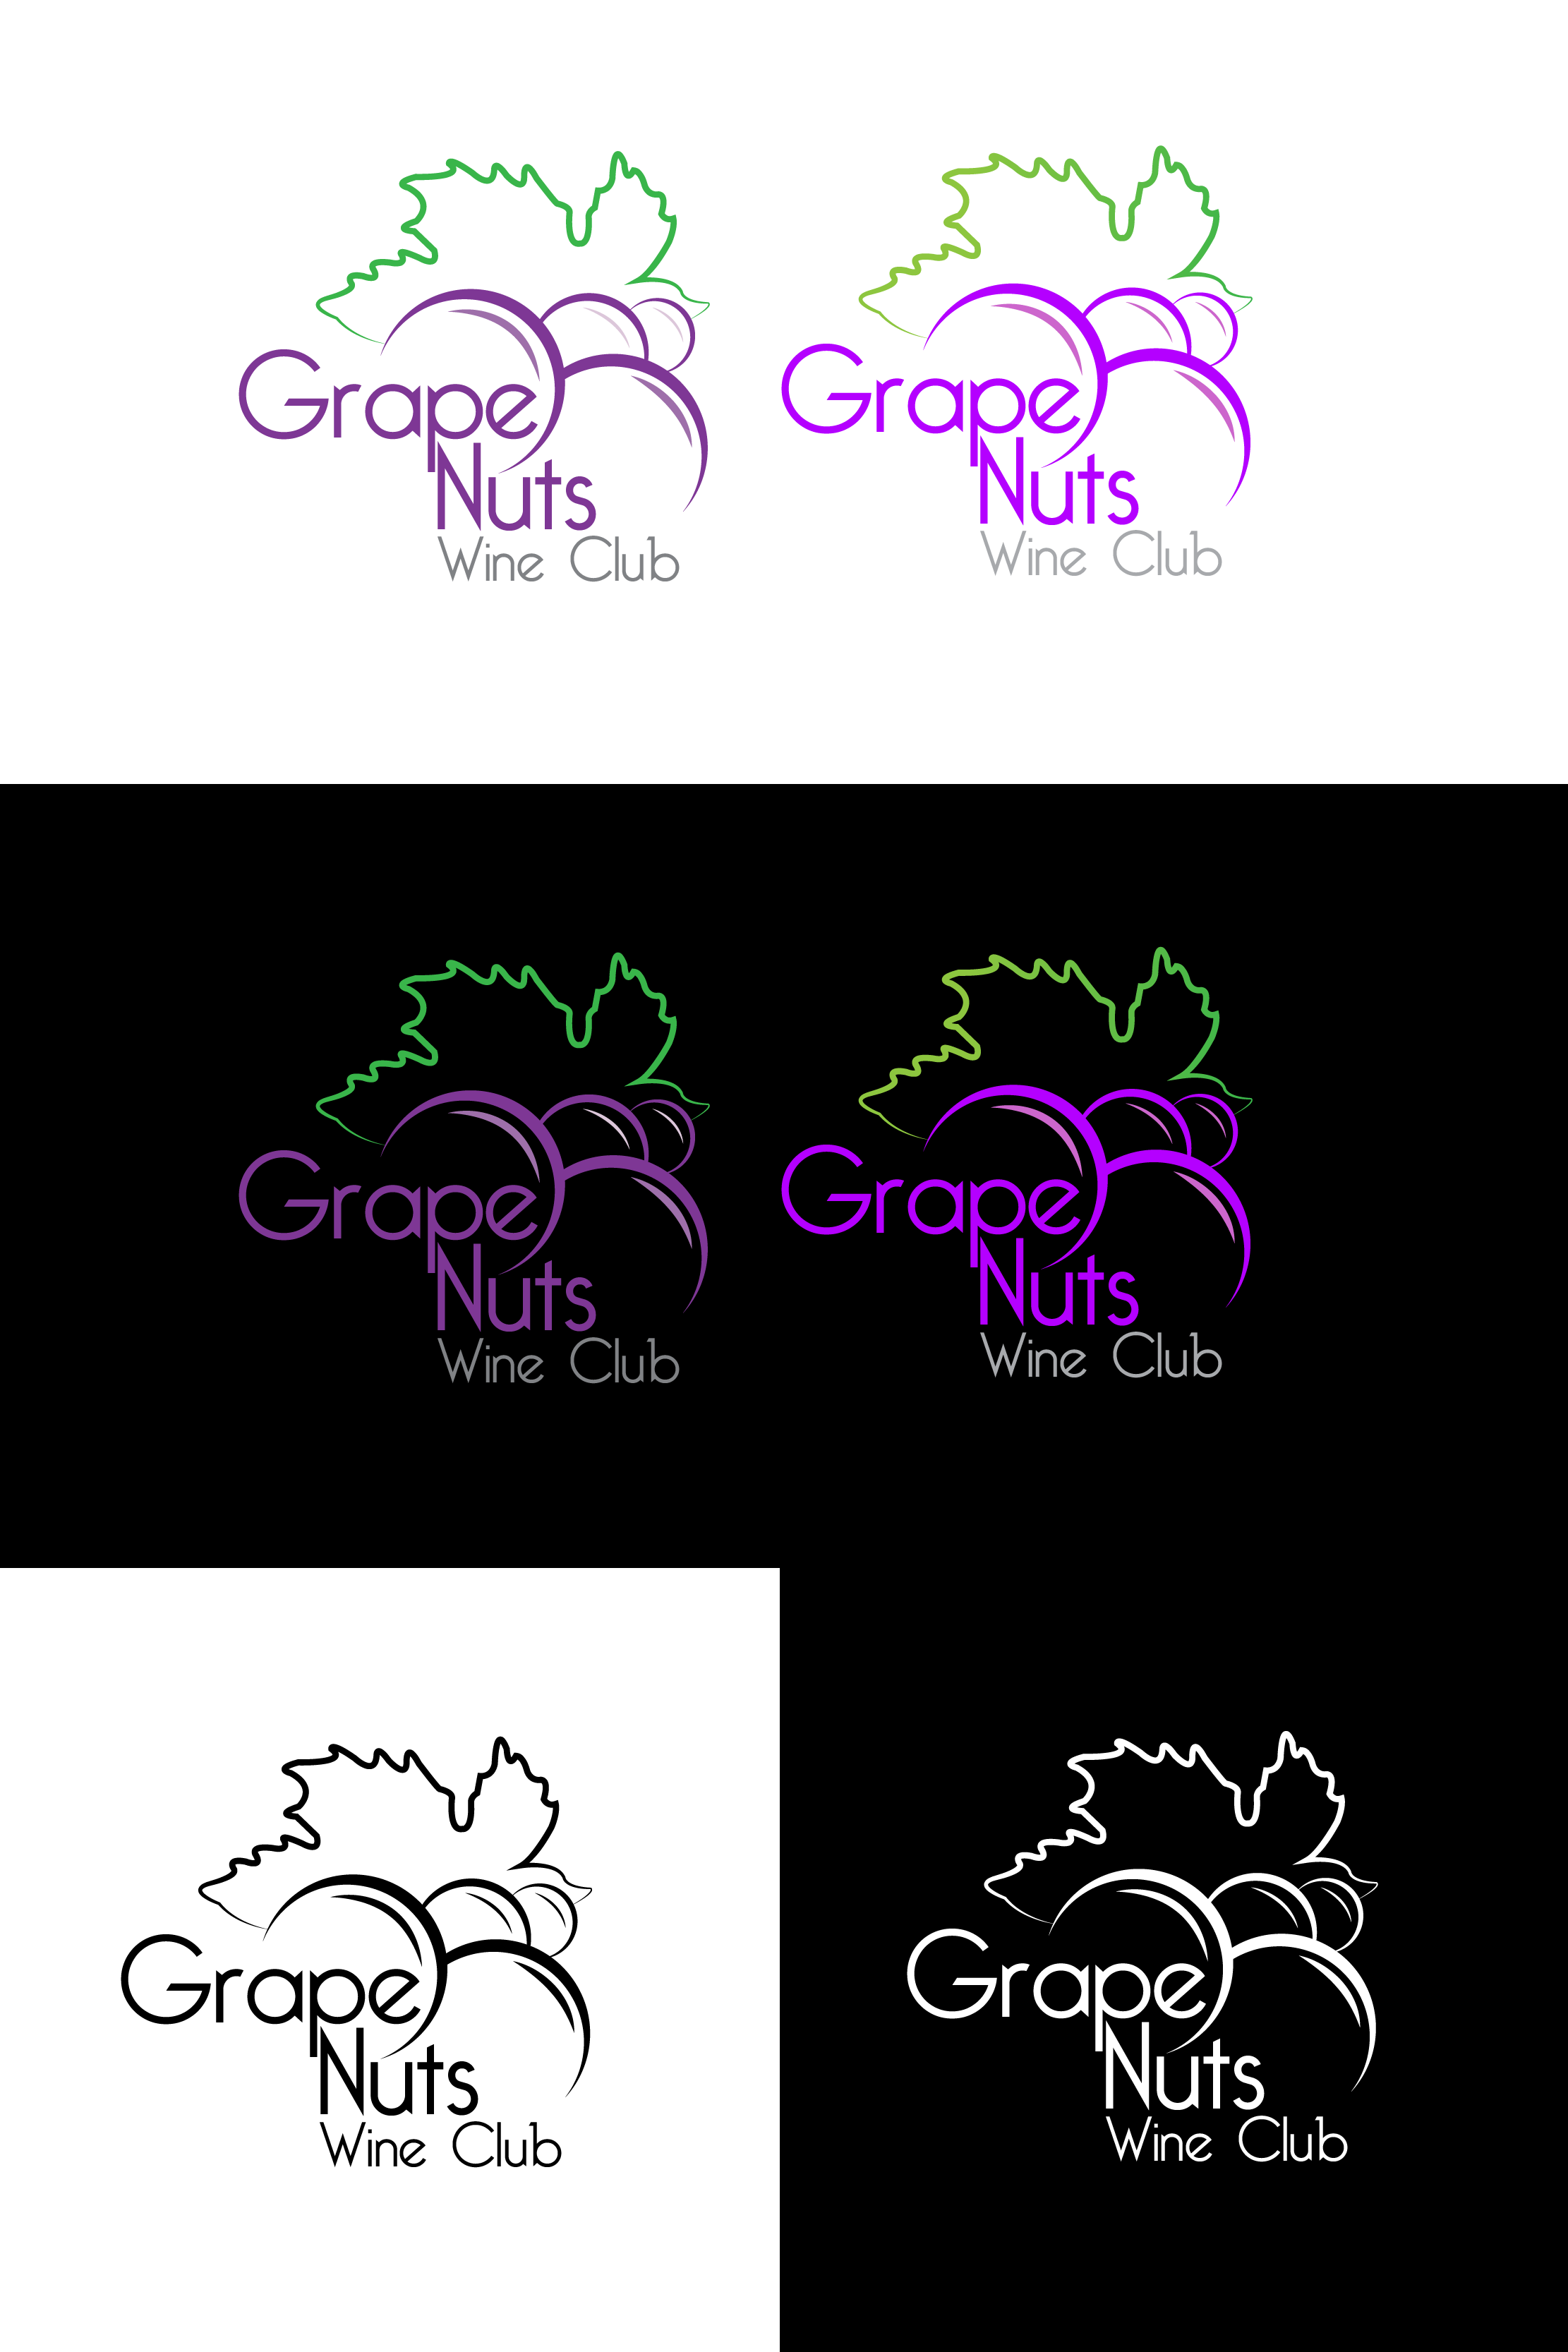 Logo Design by mediaproductionart - Entry No. 24 in the Logo Design Contest Artistic Logo Design for Grape Nuts Wine Club.